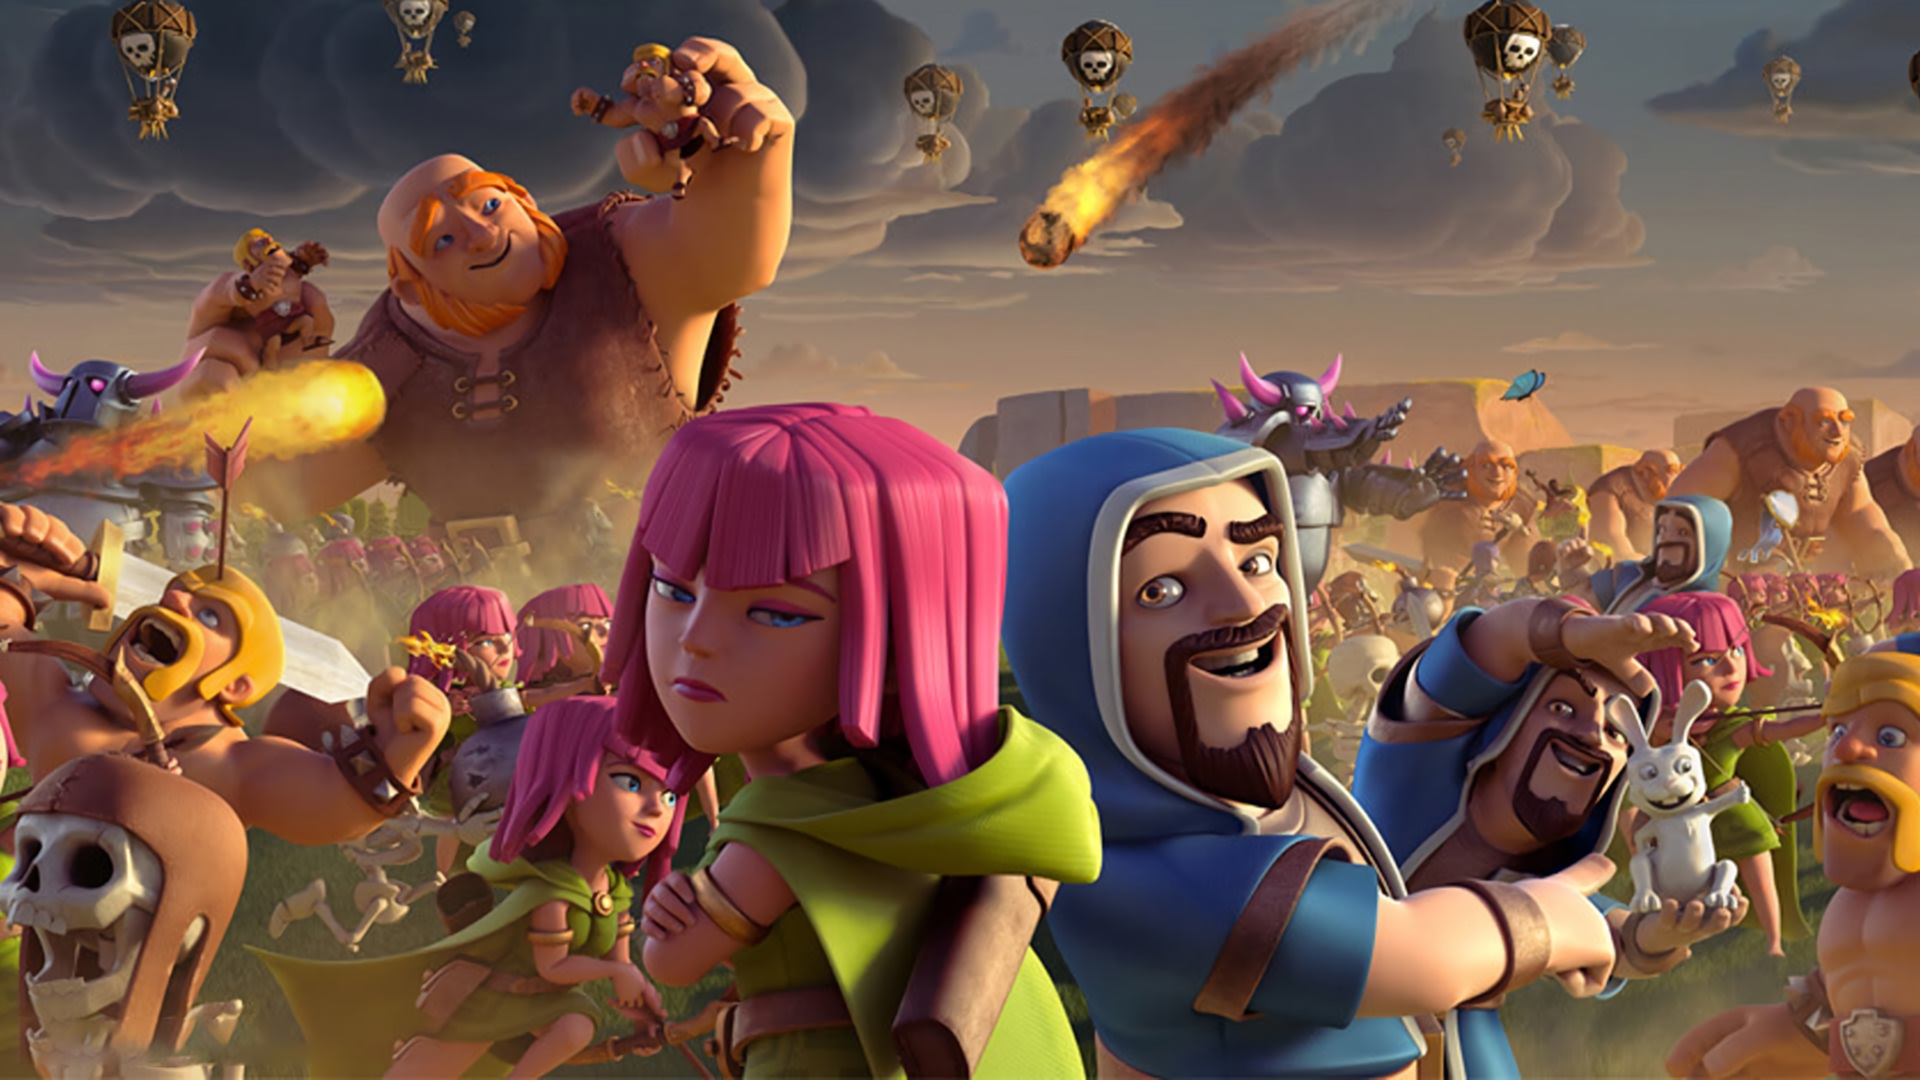 57 Clash Of Clans Hd Wallpapers Background Images Wallpaper Abyss